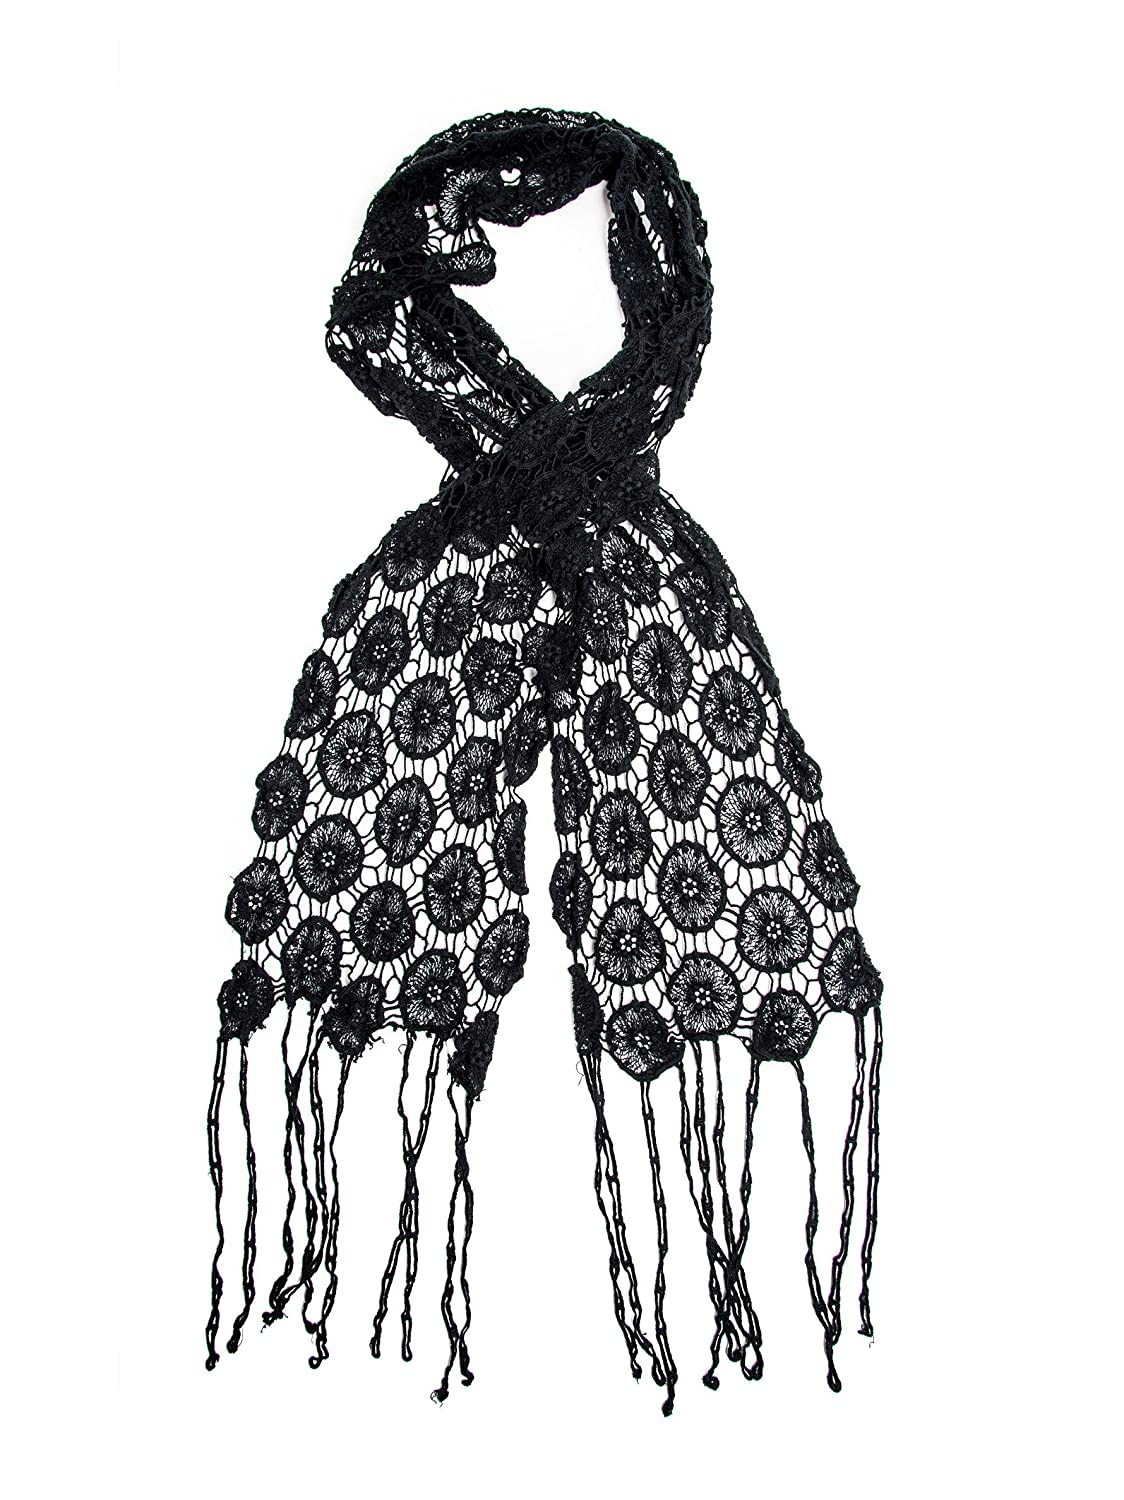 Vintage Scarves- New in the 1920s to 1960s Styles Bohomonde Florence Scarf 100% Cotton Crochet Lace Net Fringe Scarf $12.95 AT vintagedancer.com